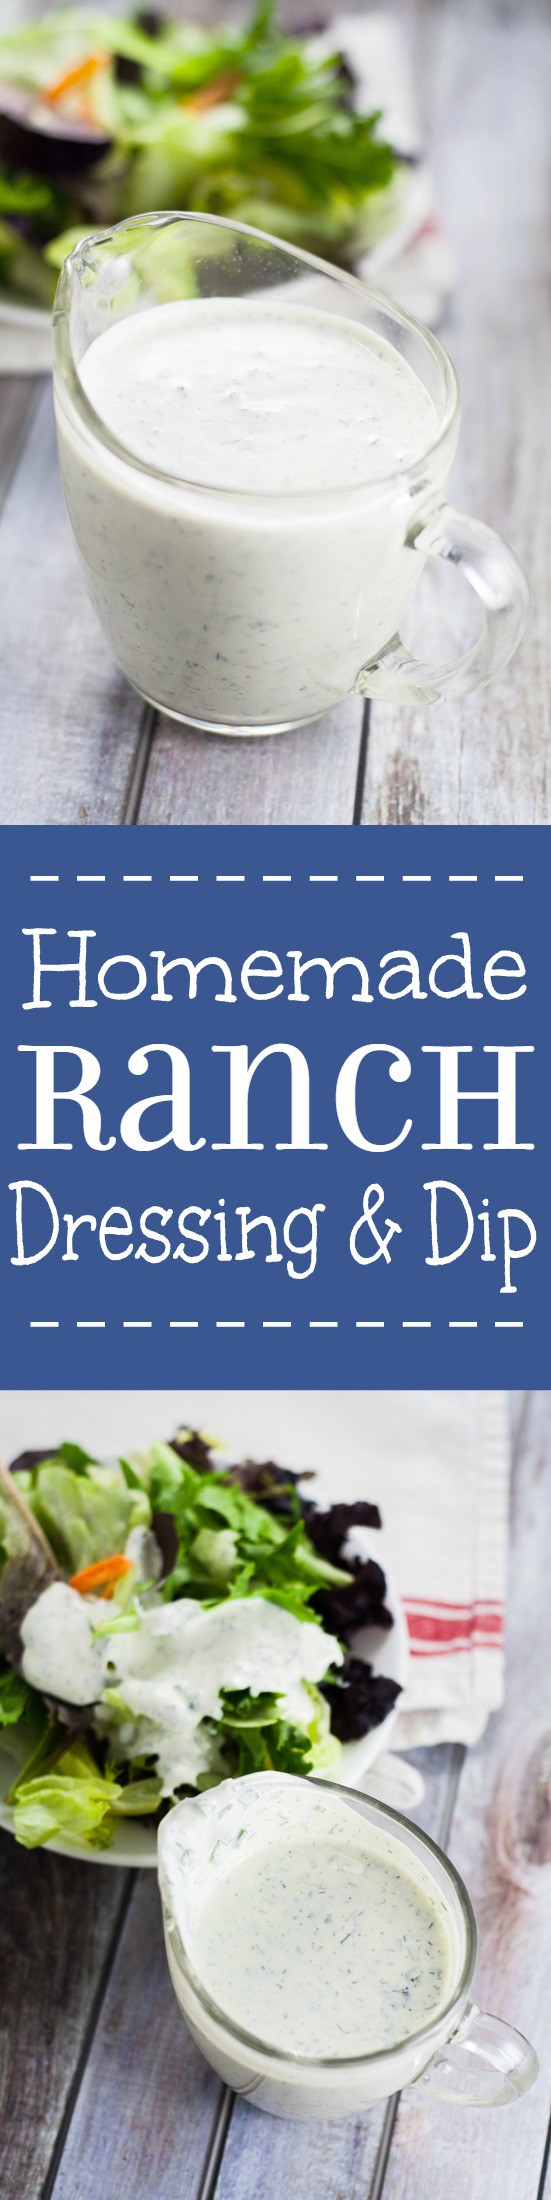 Homemade Ranch Dressing from Scratch is a heavenly topping for your green salad or dipping sauce for your favorite snacks or wings. I LOVE Ranch. This looks amazing!